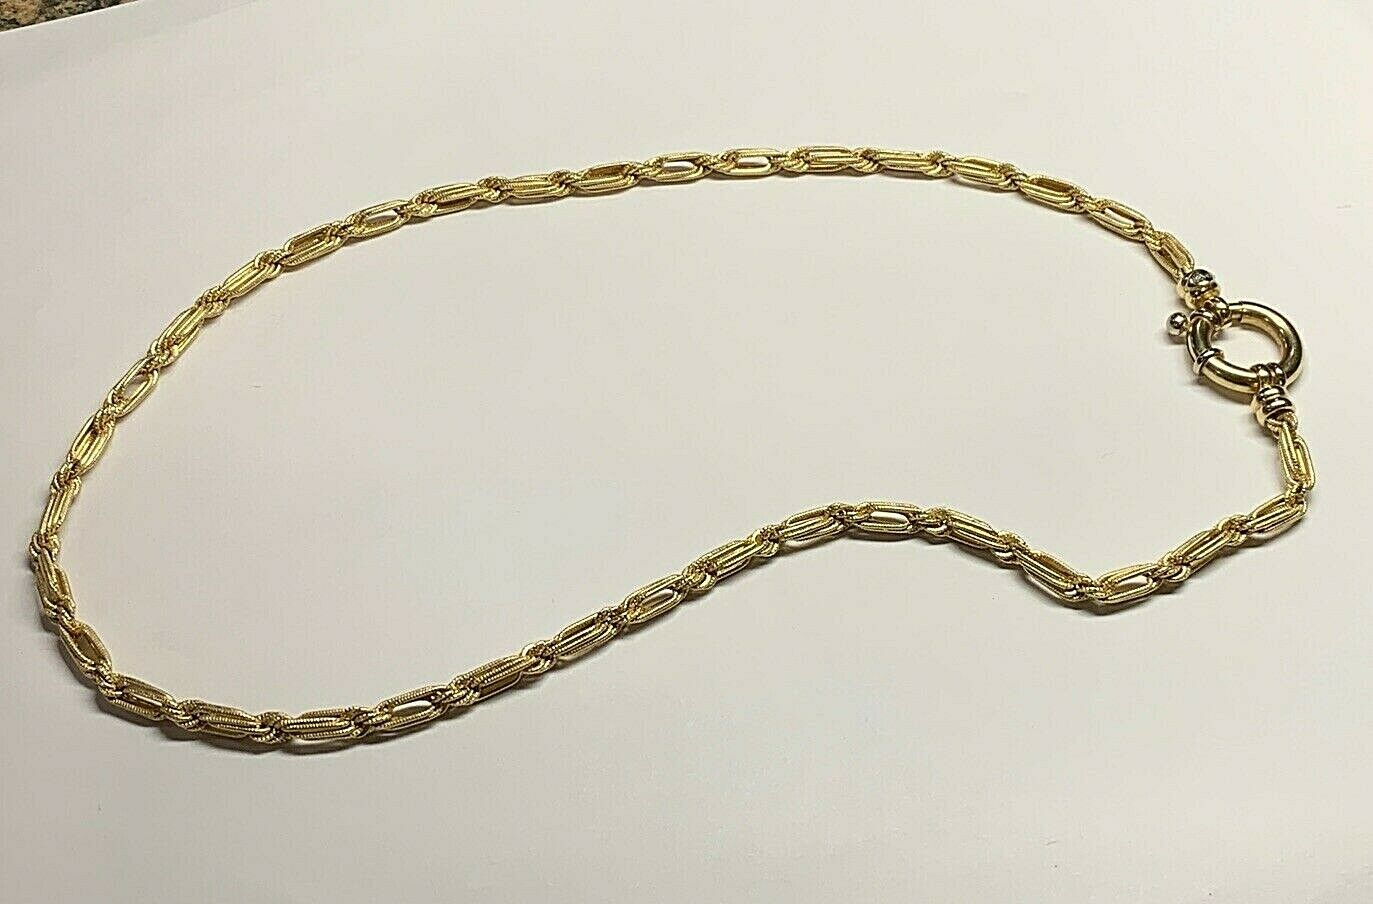 14k Yellow Gold Necklace 18 Inches 21.2 Grams